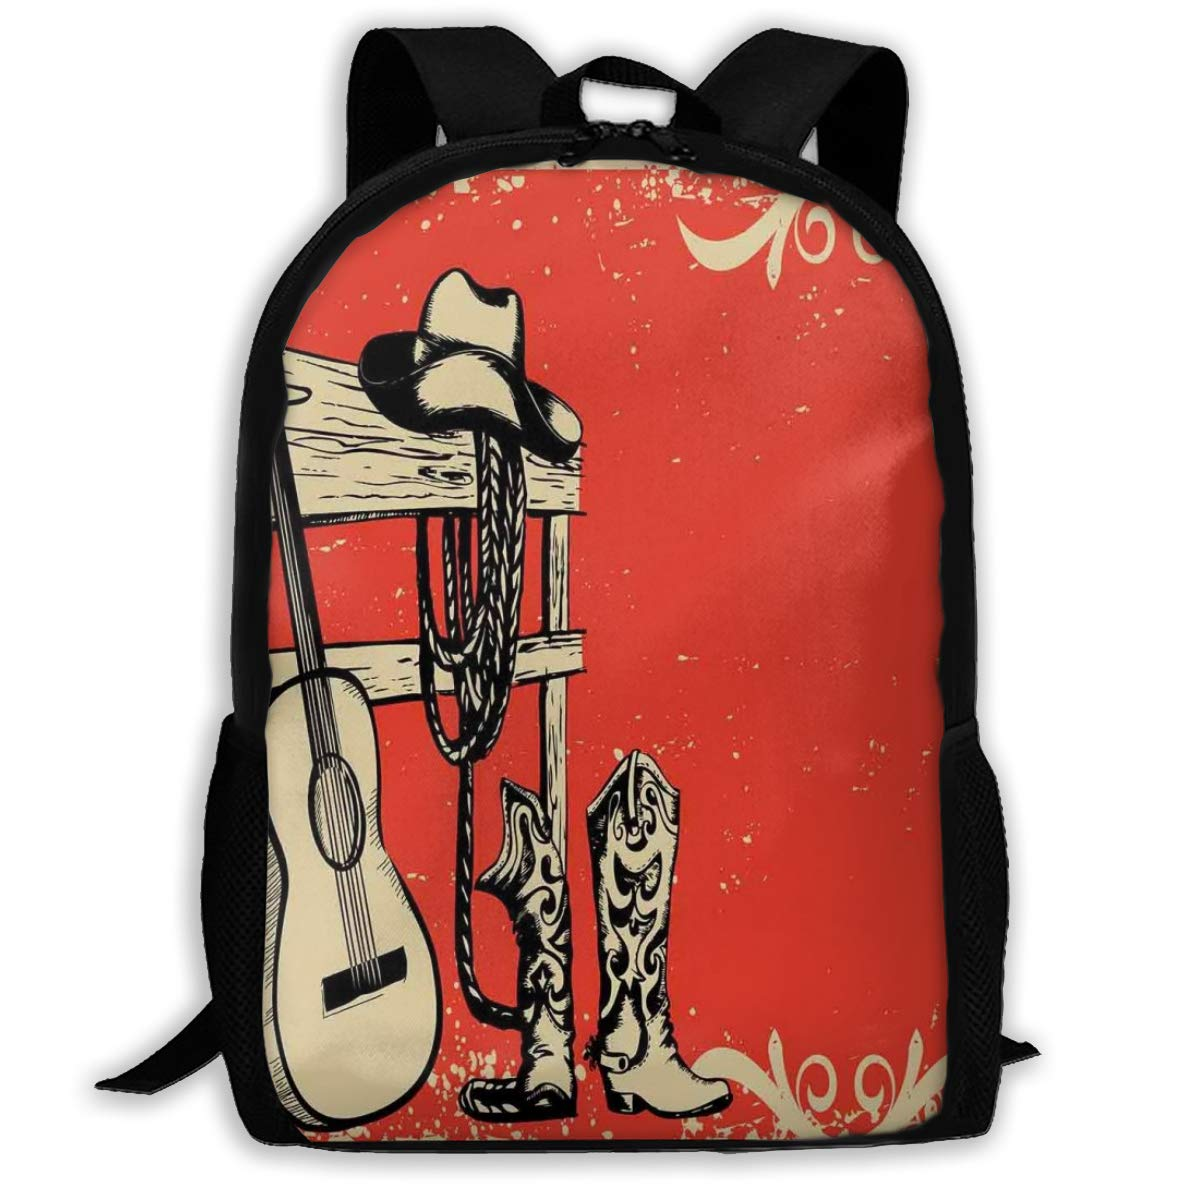 Adult Travelc Laptop Backpack,Image Of Wild West Elements With Country Music Guitar And Cowboy Boots Retro Art,College School Computer Bookbag by GULTMEE